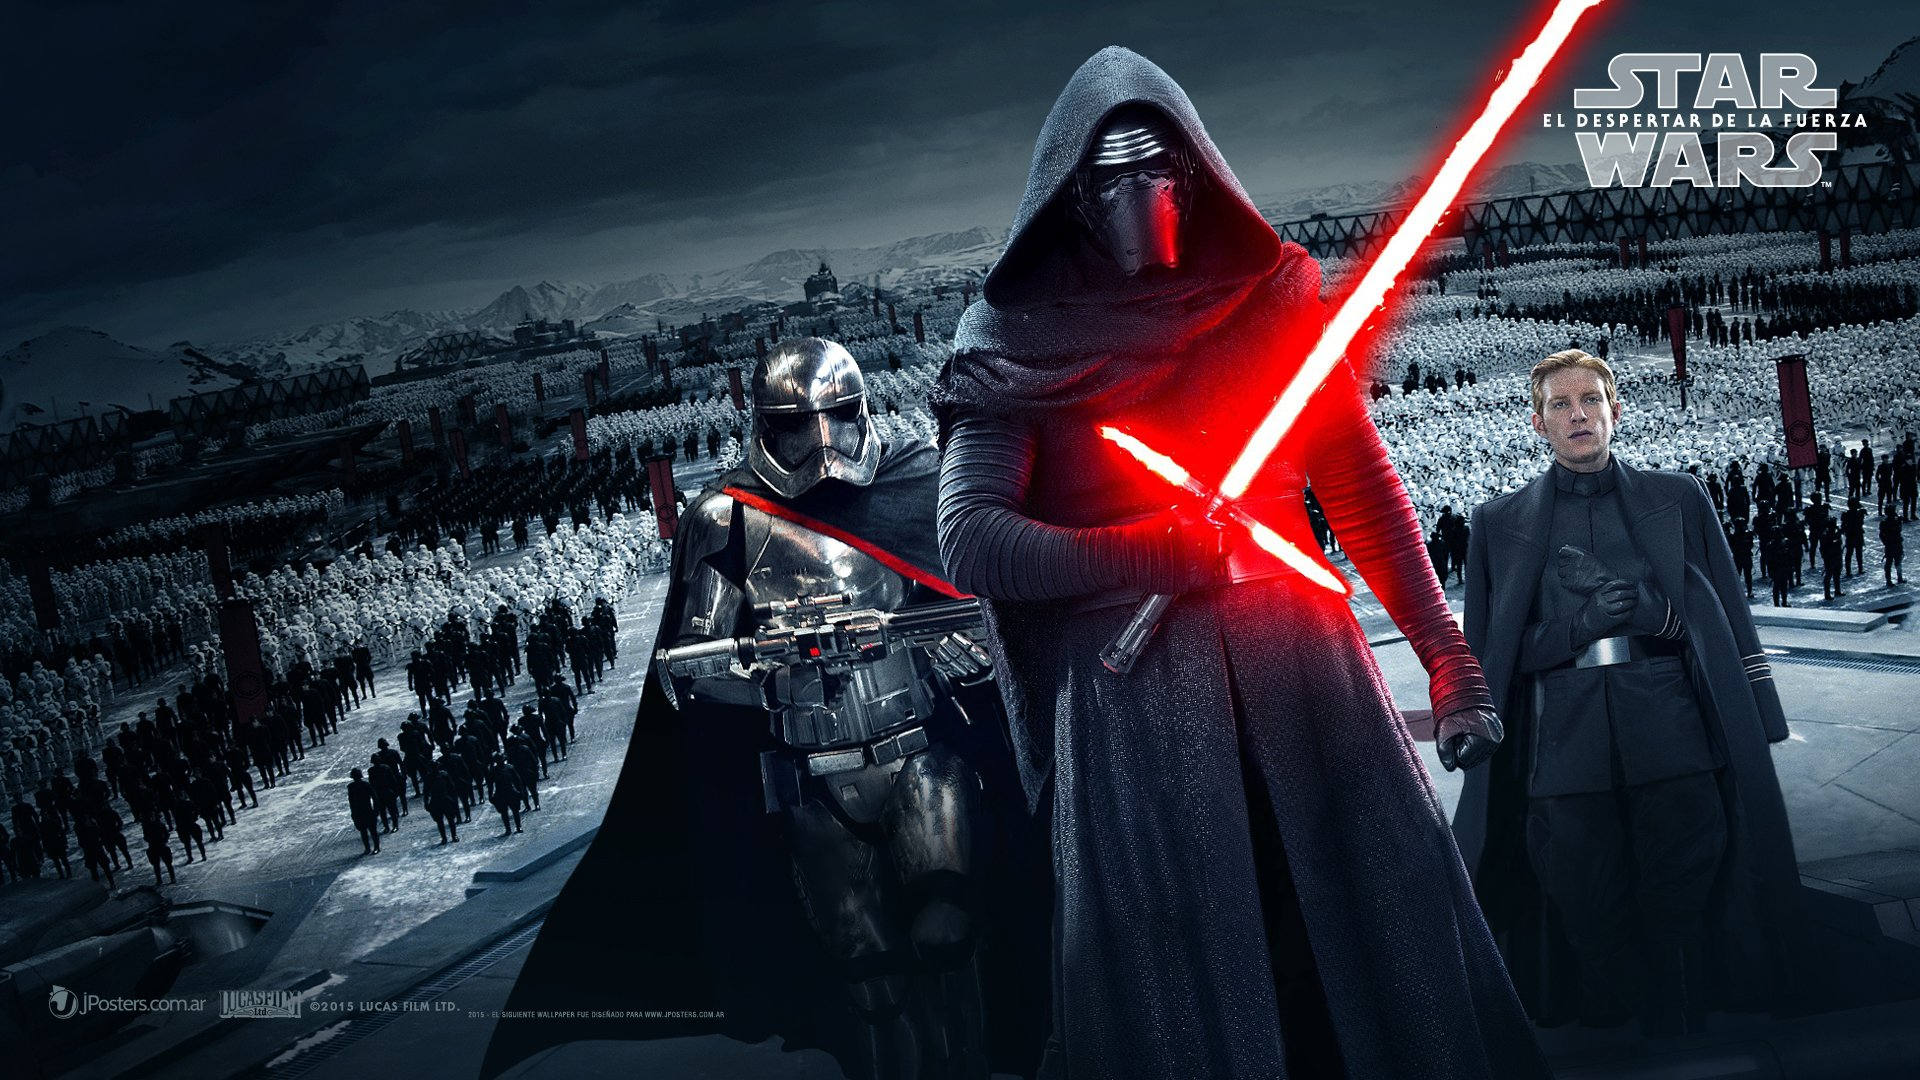 Star Wars: The Force Awakens: un trailer pour Finn!